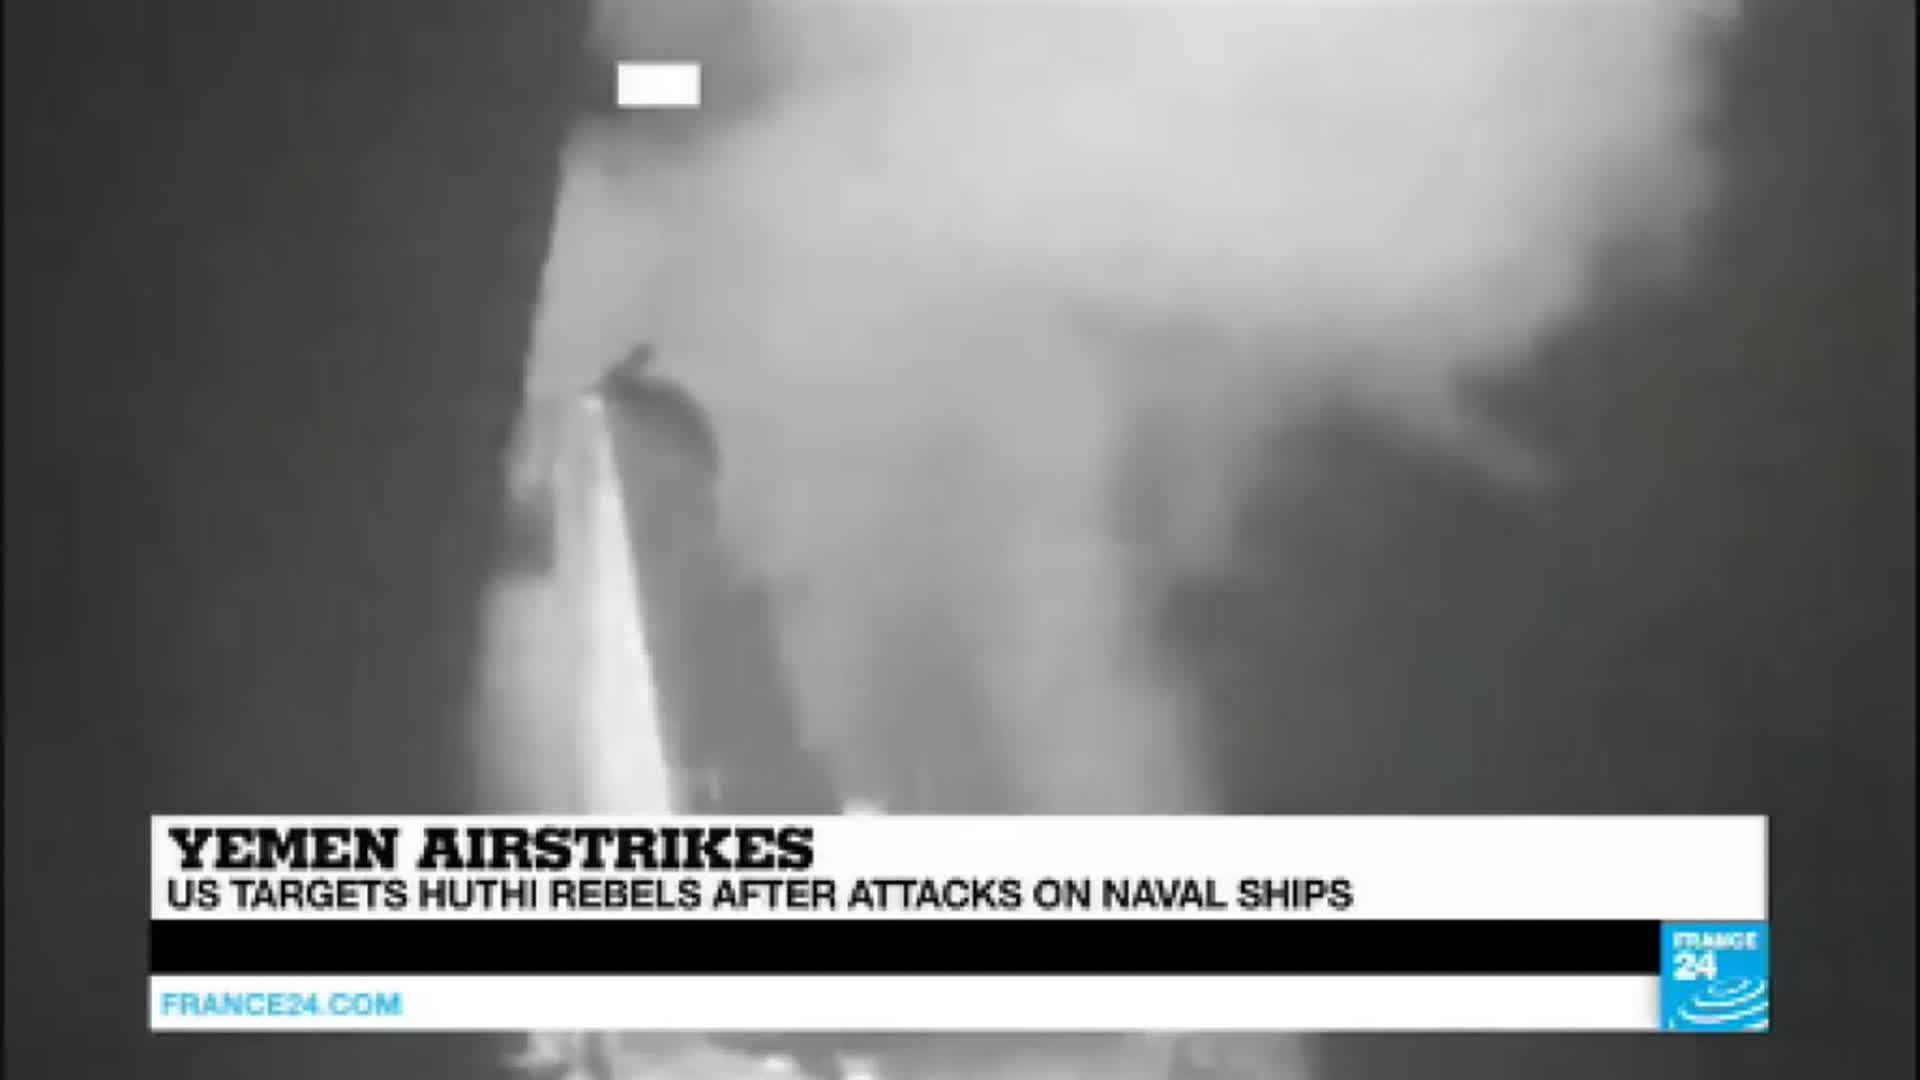 Yemen: US launches self defense air strikes against Huthi rebels after attacks on naval ships